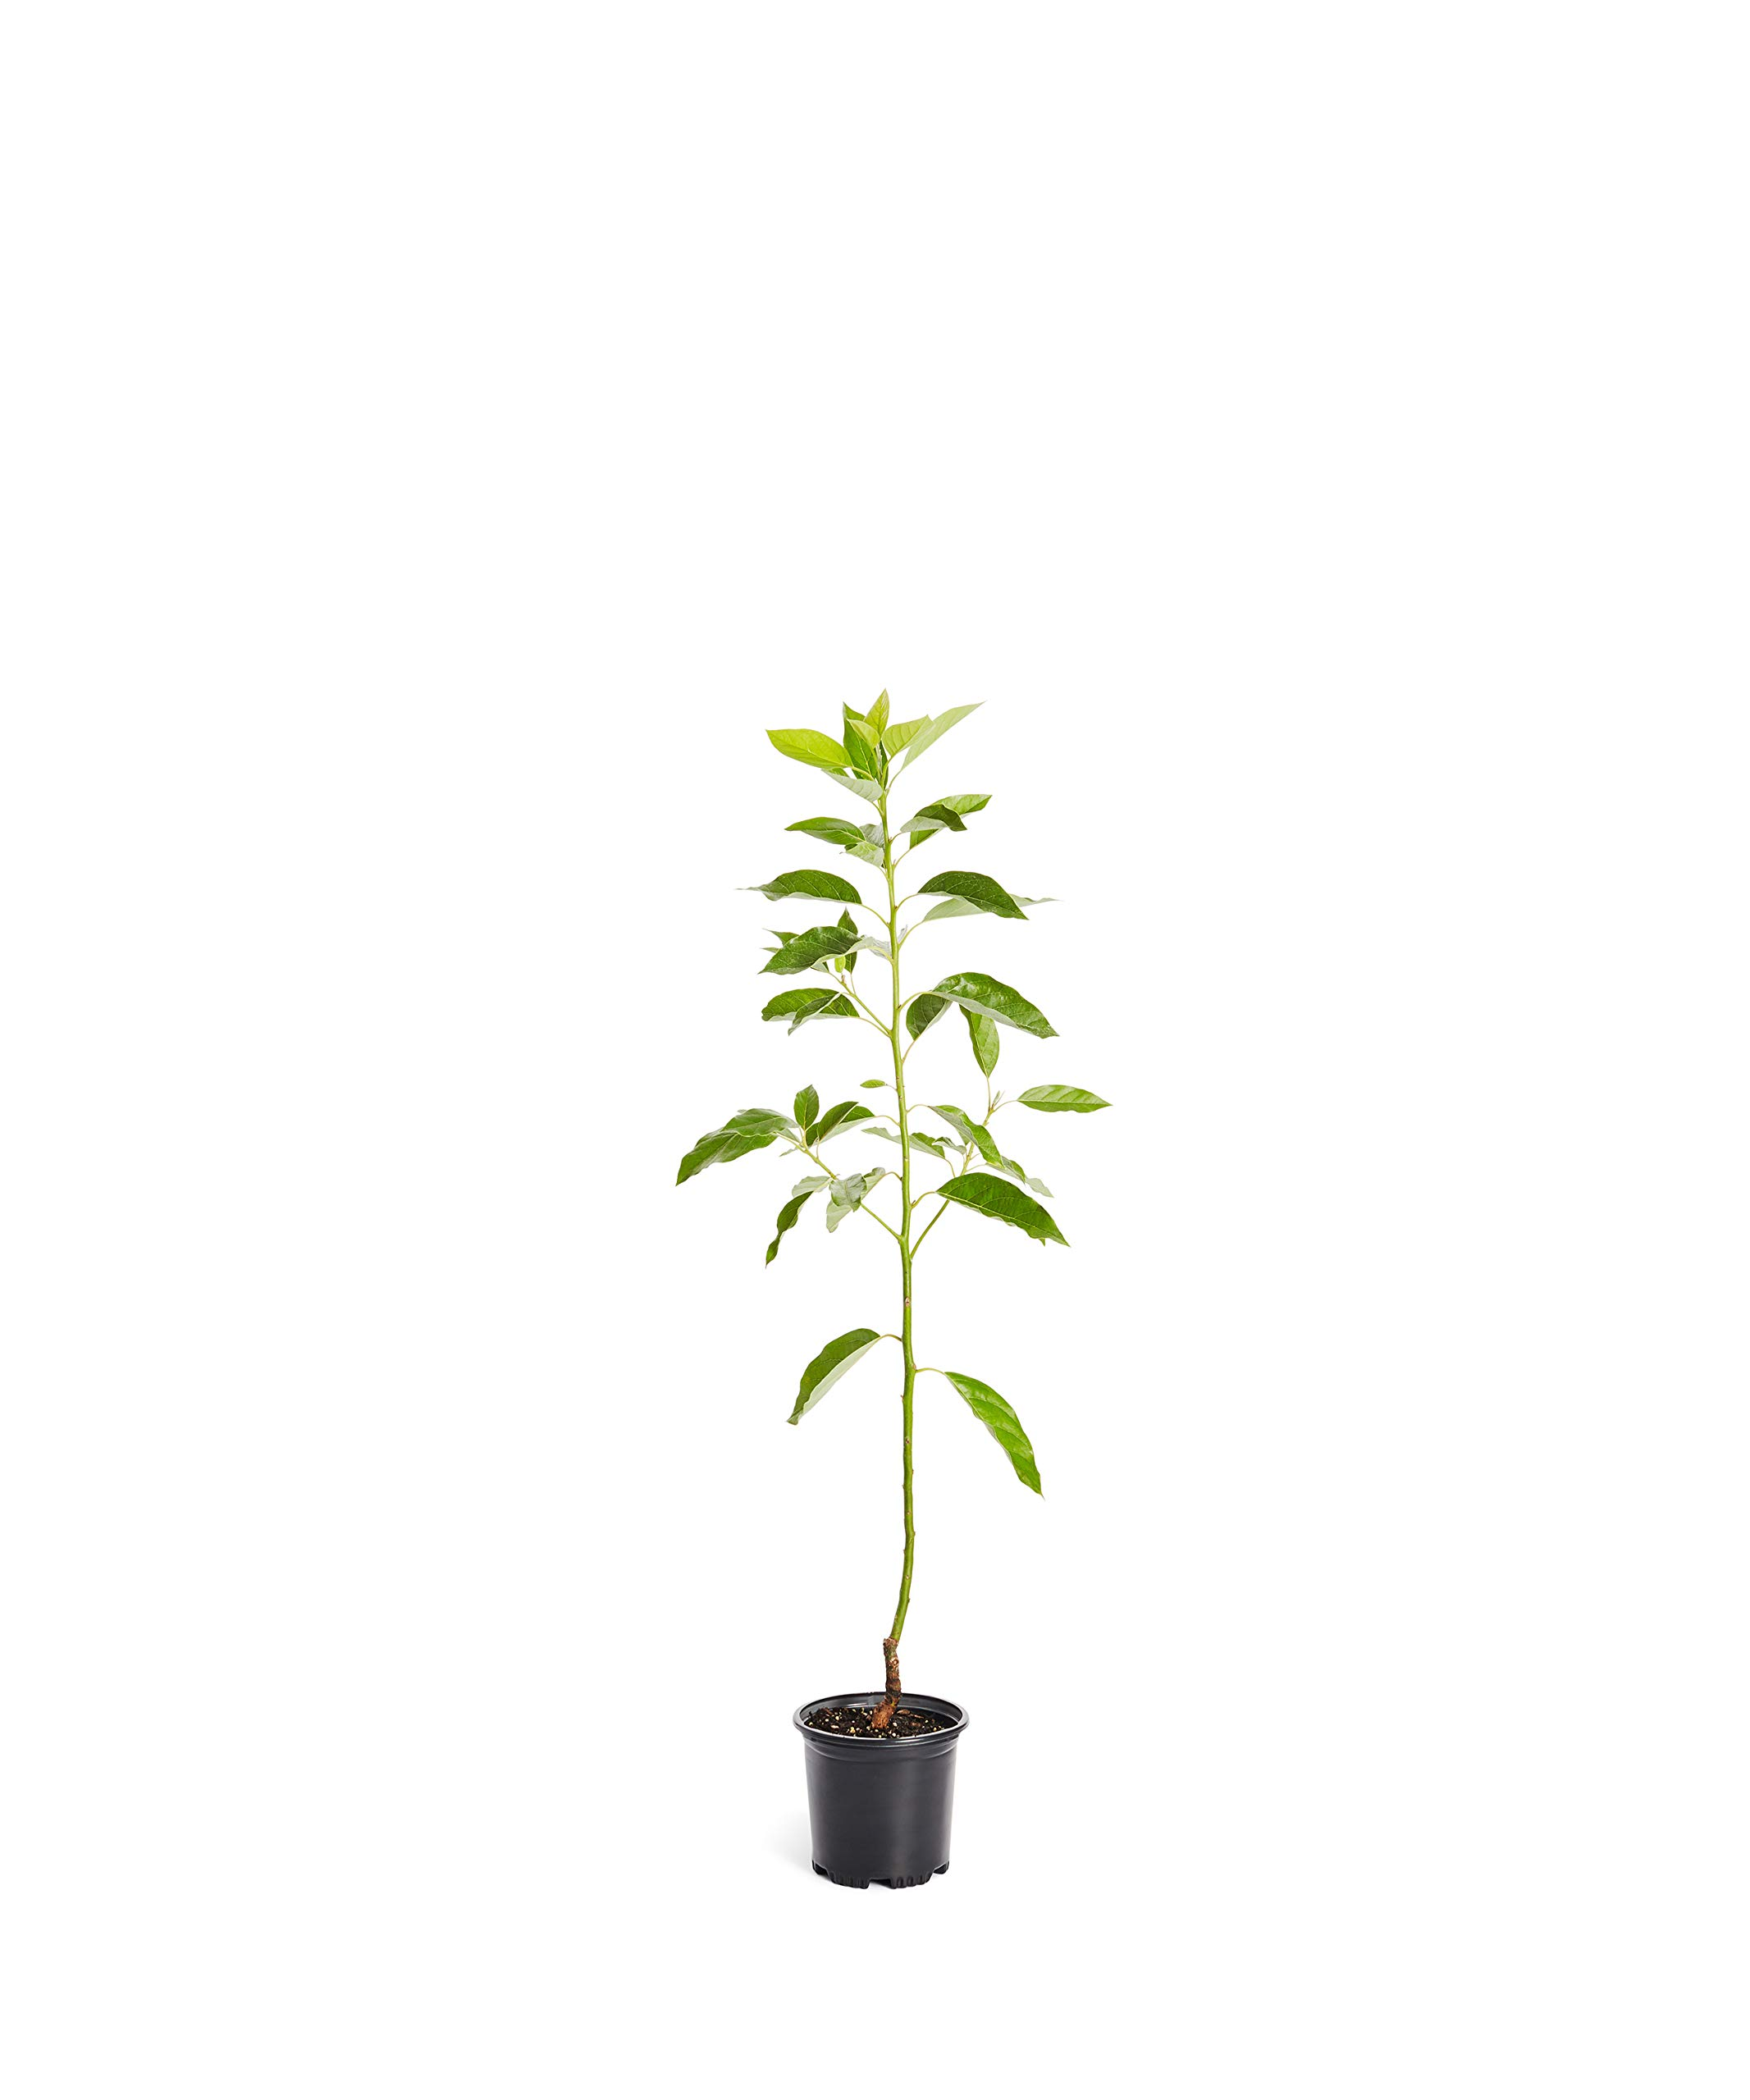 Cold Hardy Avocado Tree - (Mexicola Grande) - Get Delicious Avocados Year Round from This Fruit Tree by Brighter Blooms Nursery - 1-2 ft. | Cannot Ship to AZ by Brighter Blooms (Image #1)